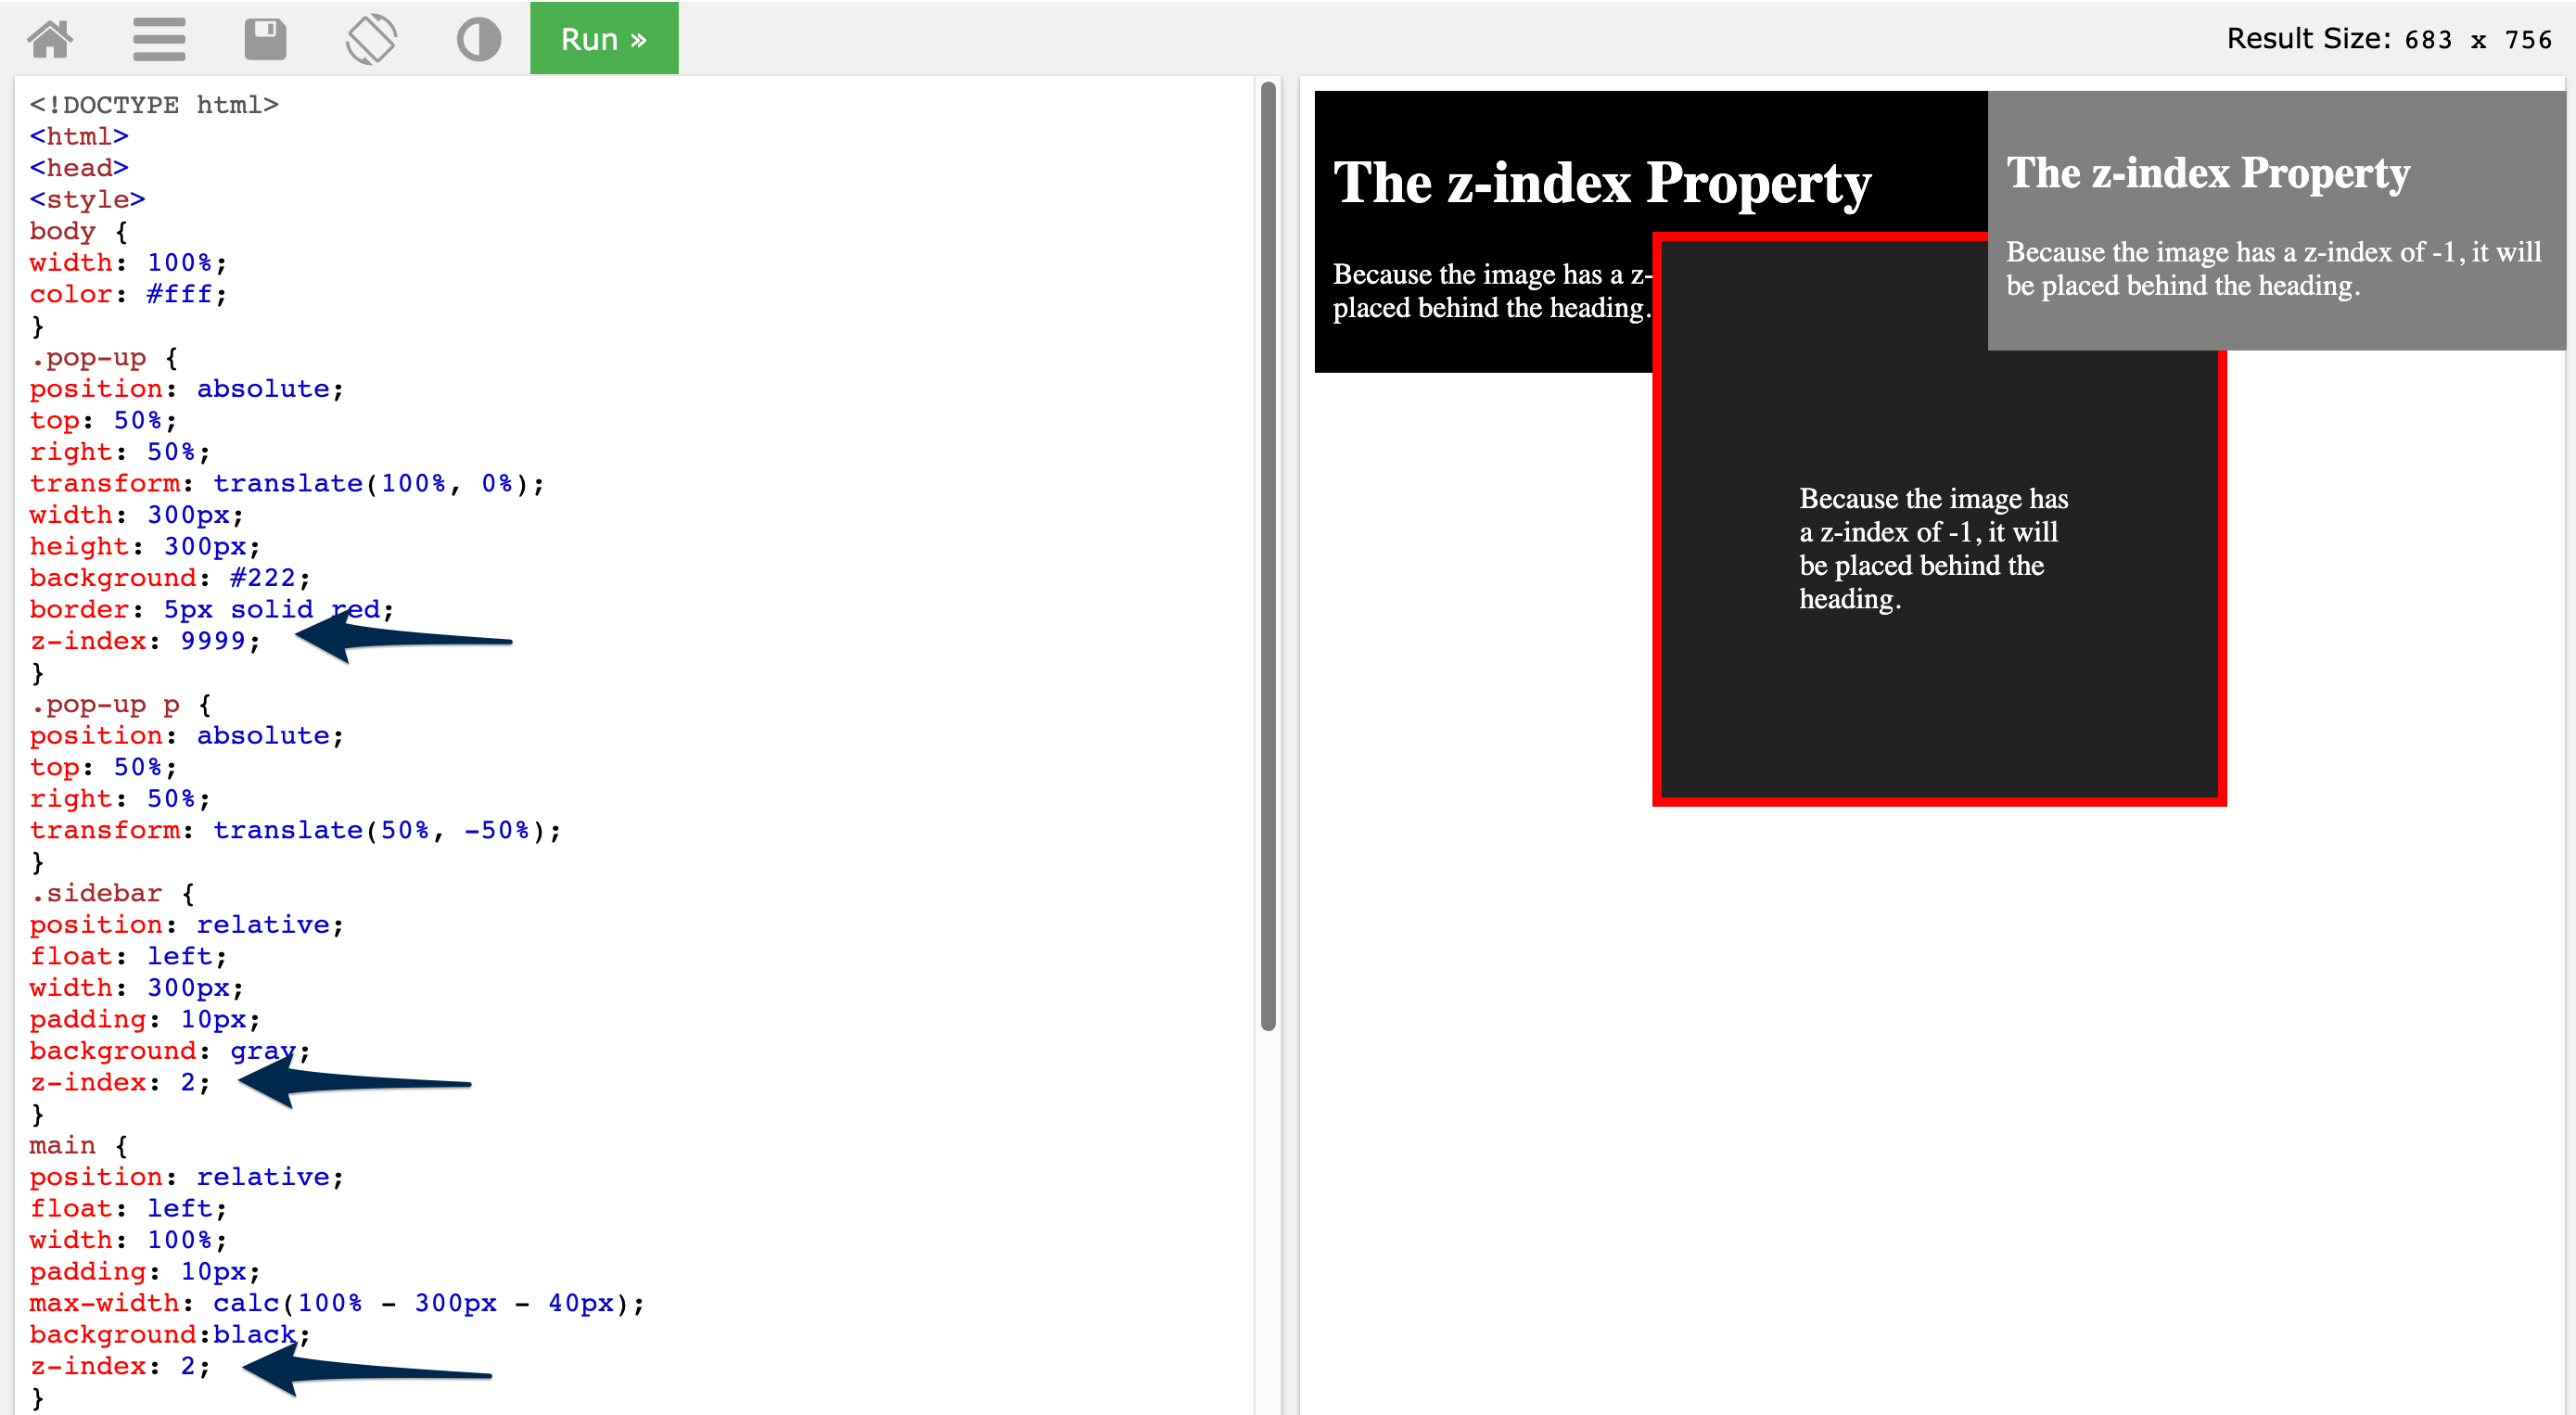 On the right the pop up is under the sidebar but on top of the main area. The left has the CSS document an arrow points to the element with a class of pop-up set to 9999, the element with a class of sidebar is set to 2, and the main element is set to 2